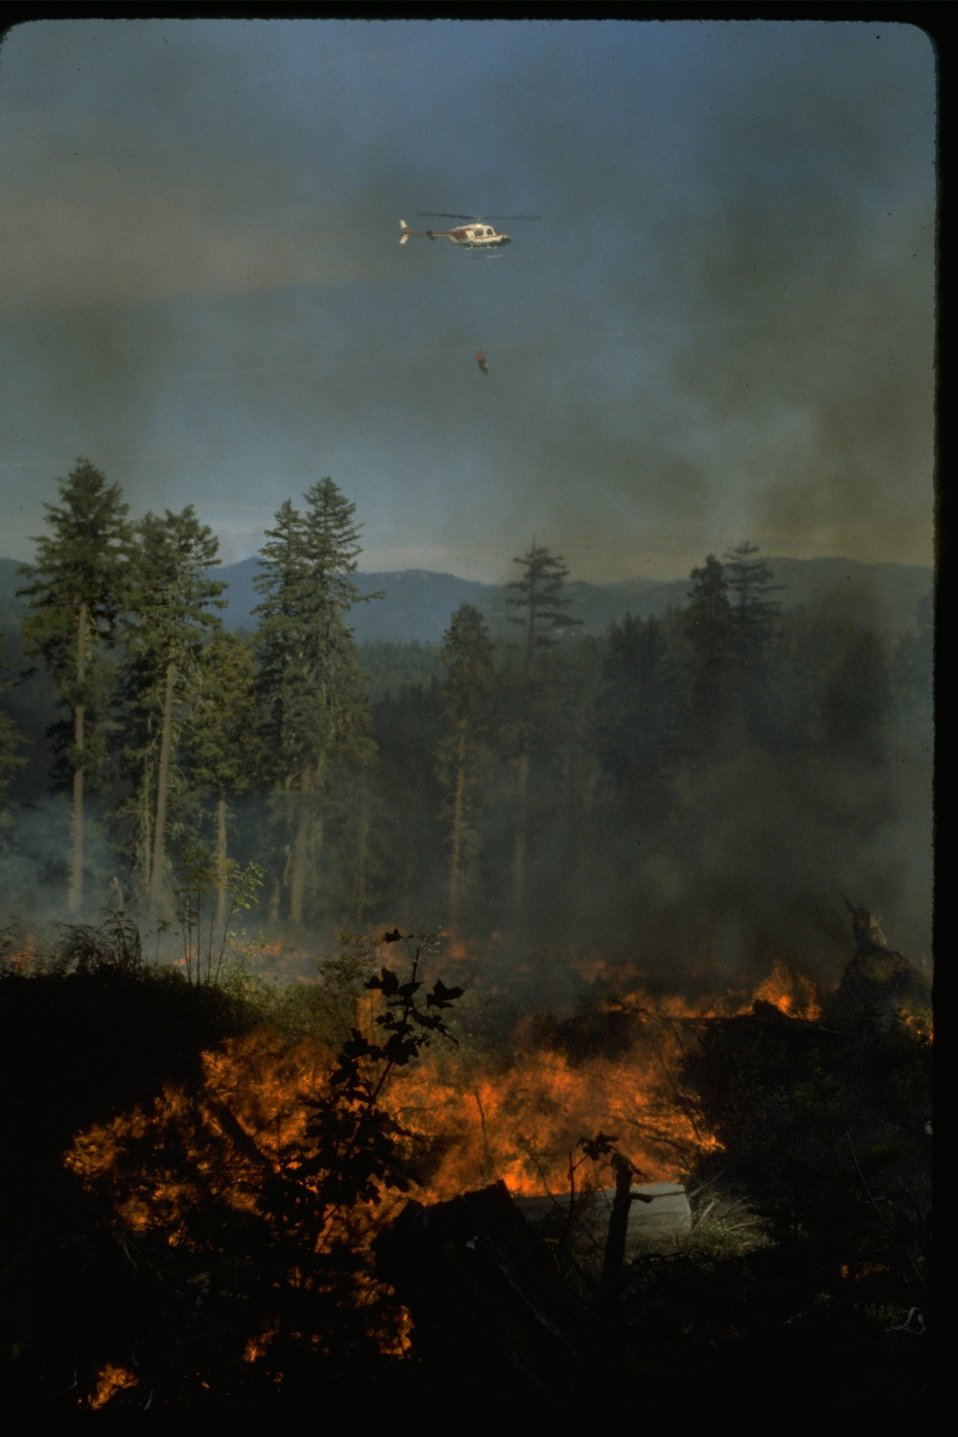 Helicopter flying  over a prescribed fire.